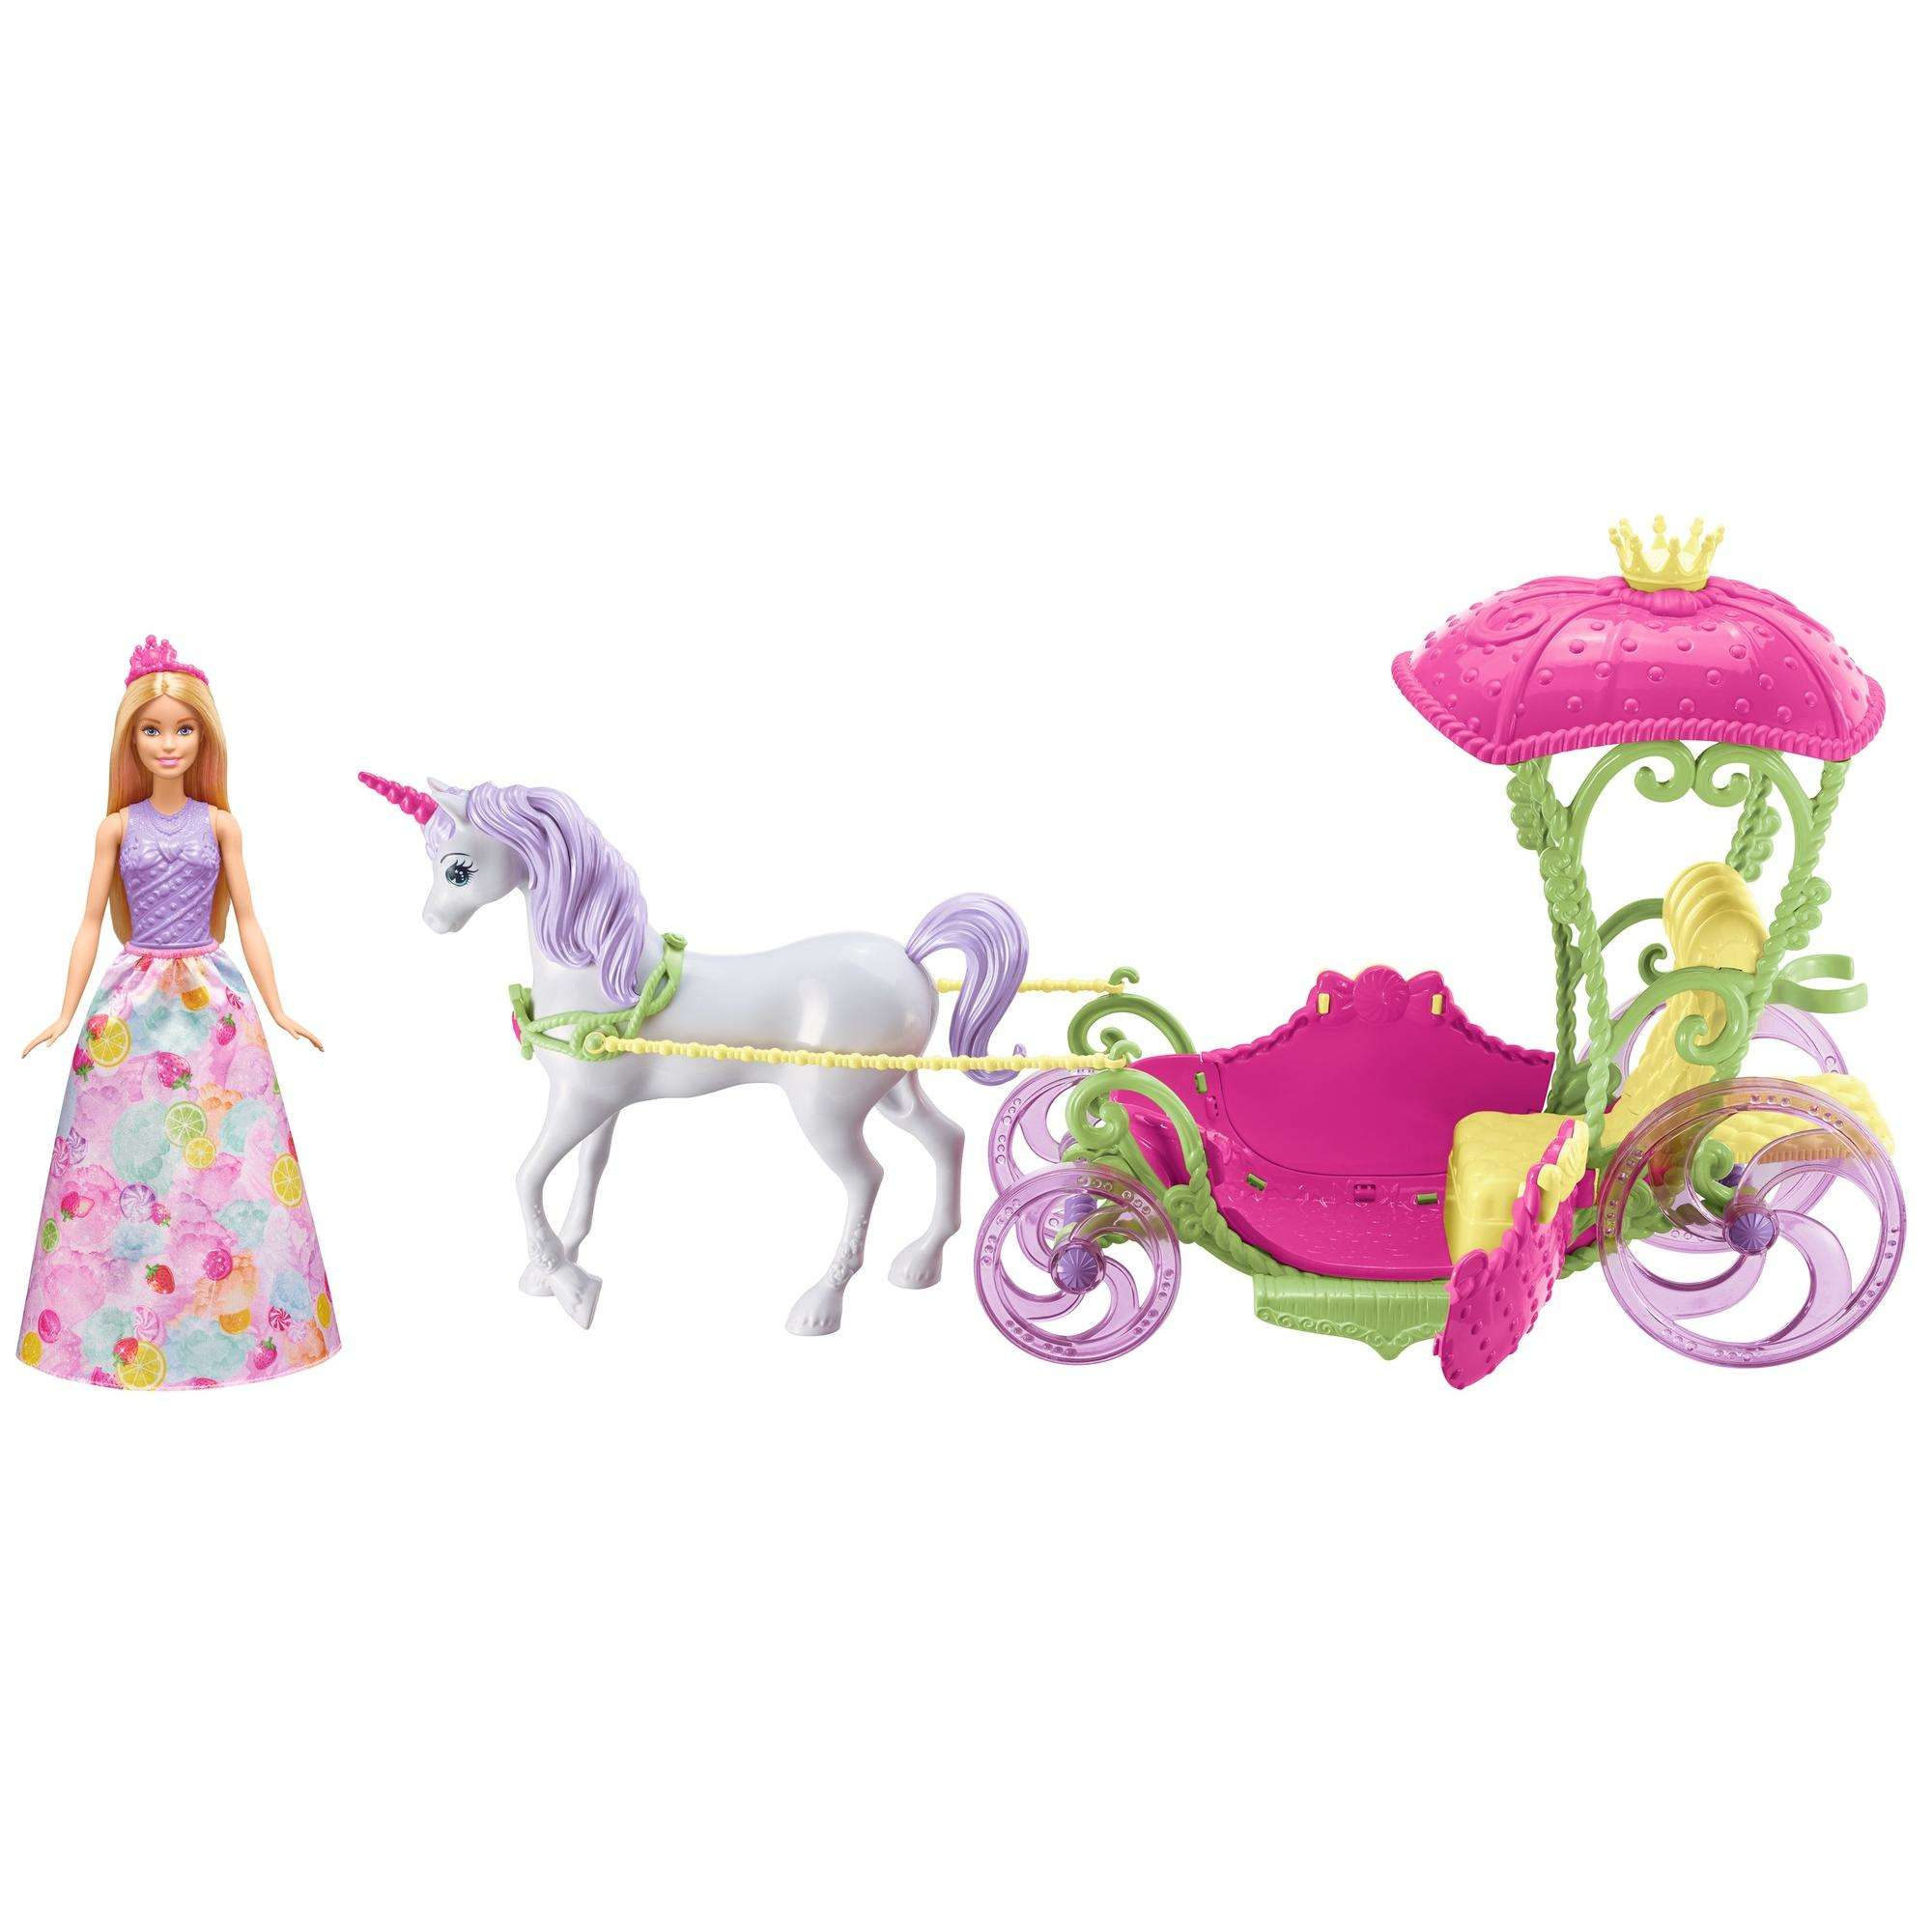 Barbie Dreamtopia Sweetville Carriage by Mattel